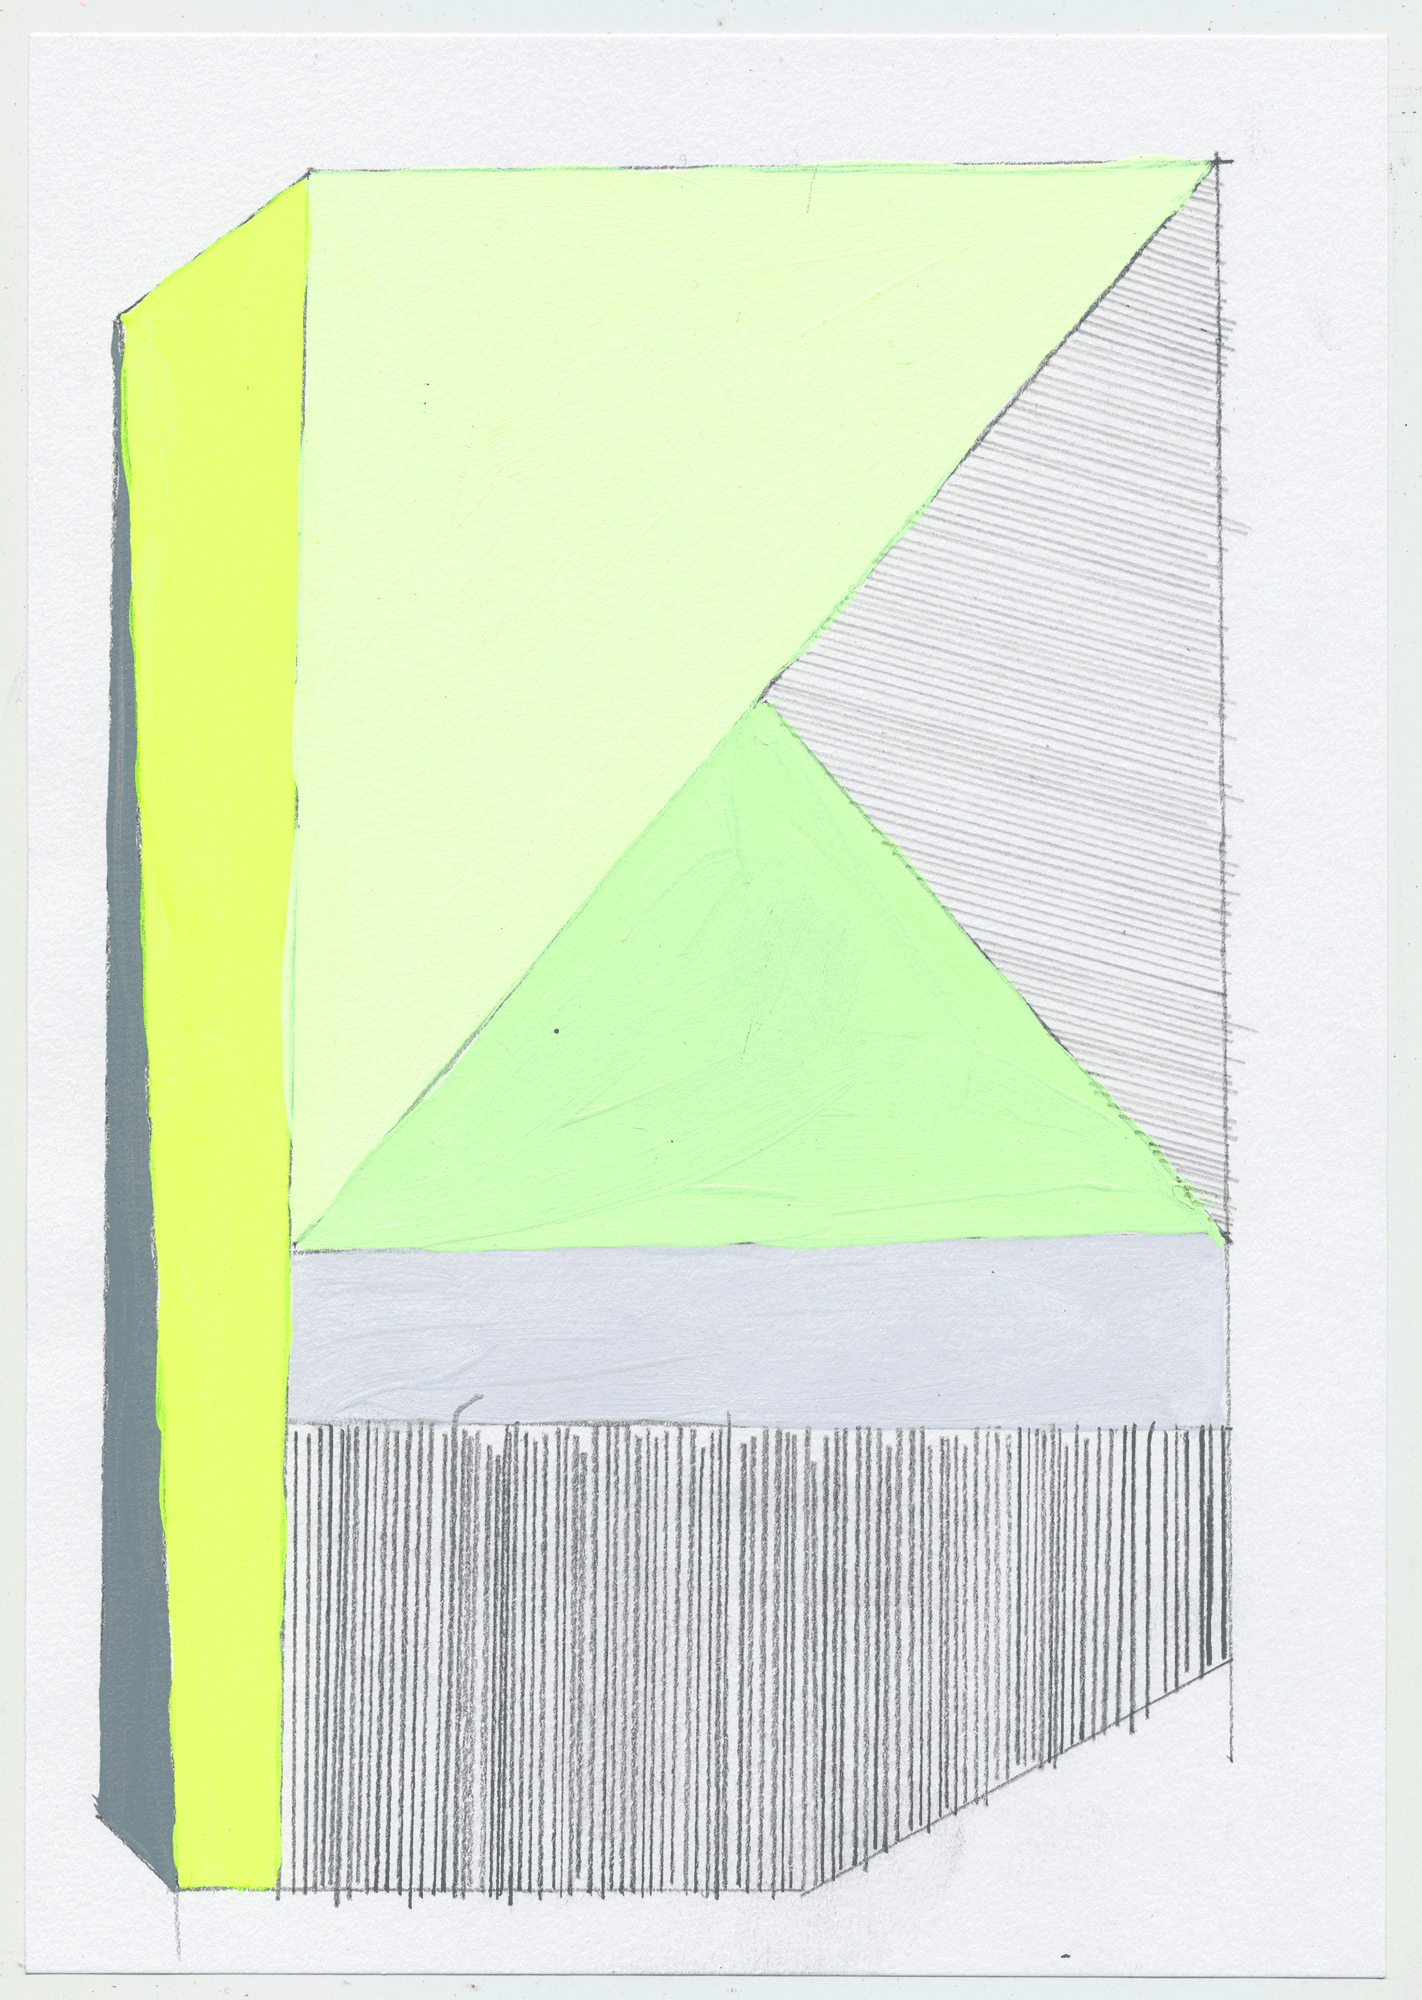 "NY1713 10"" X 7"", acrylic on paper, 2017 SOLD  another set of quick sketches to help break up the painting process & play with color. these could make fantastic rugs!"